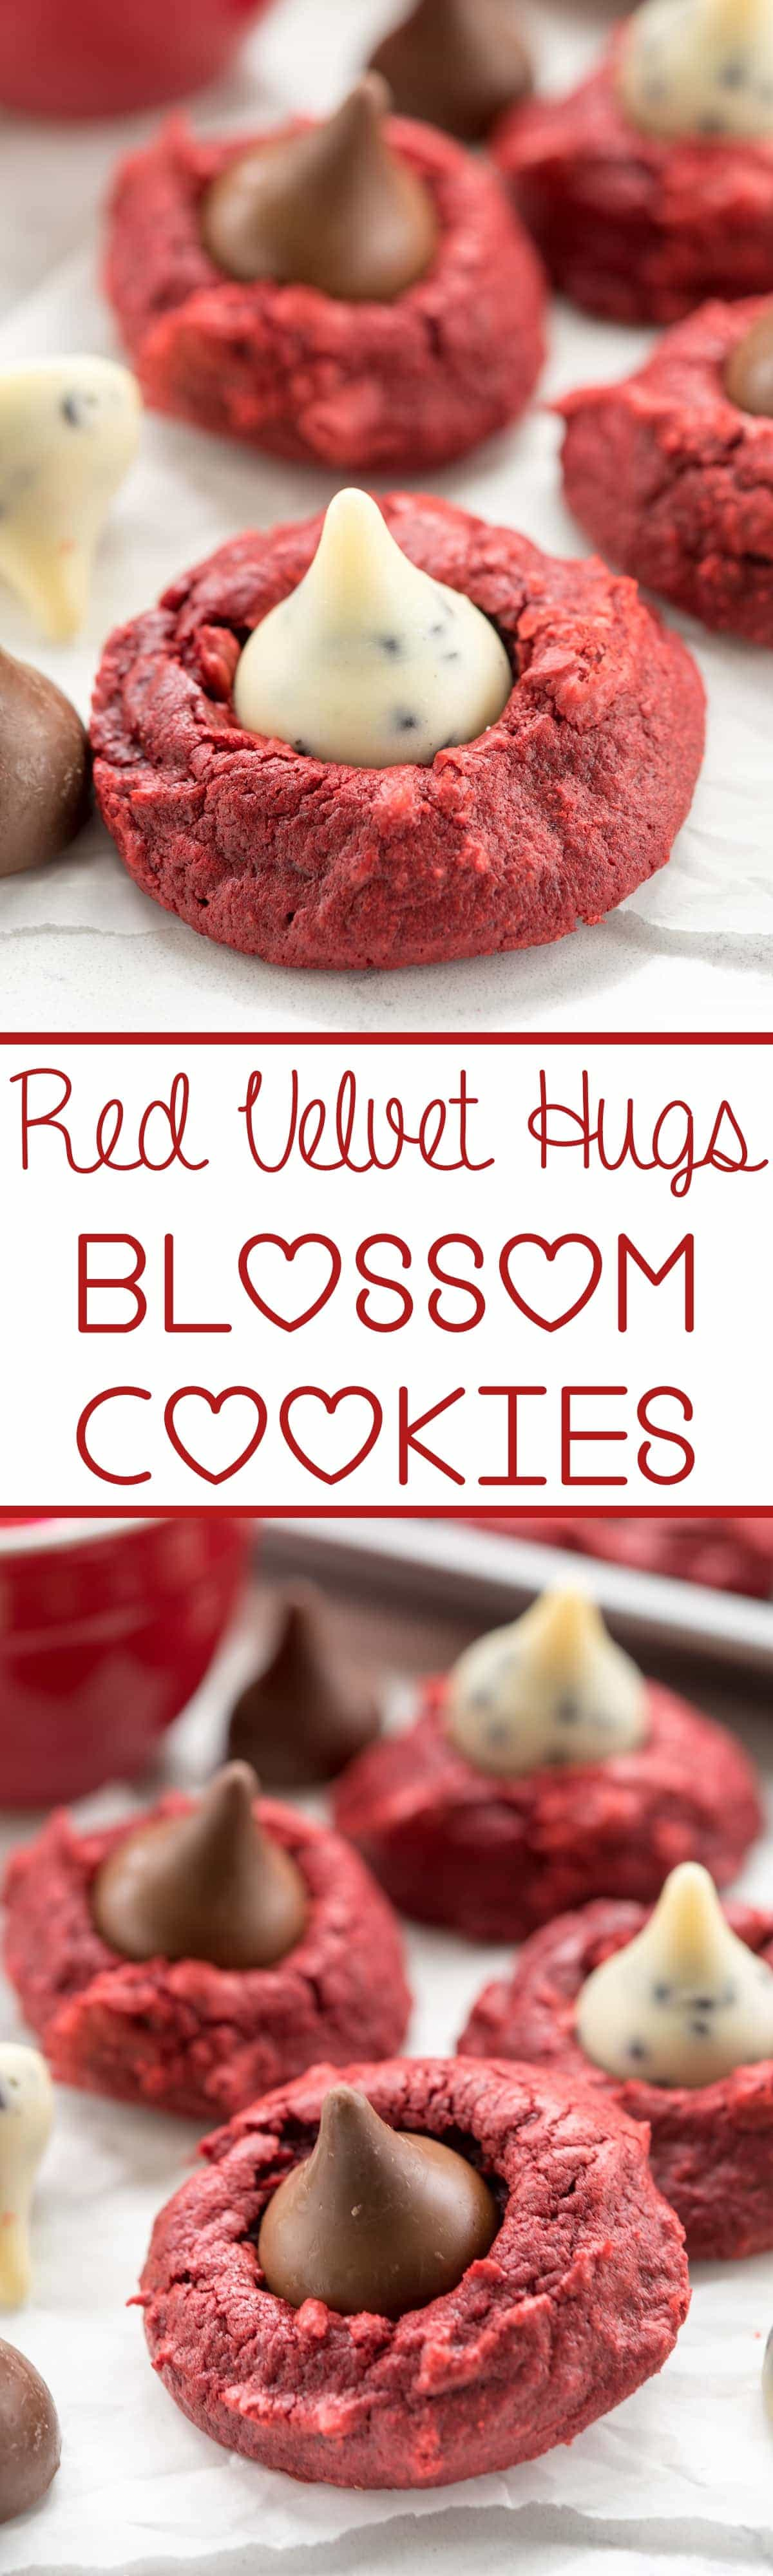 Red Velvet Blossom Cookies are easy to make with red velvet cake mix and Hershey's Kisses! These are the perfect holiday cookie, especially for Valentine's Day.